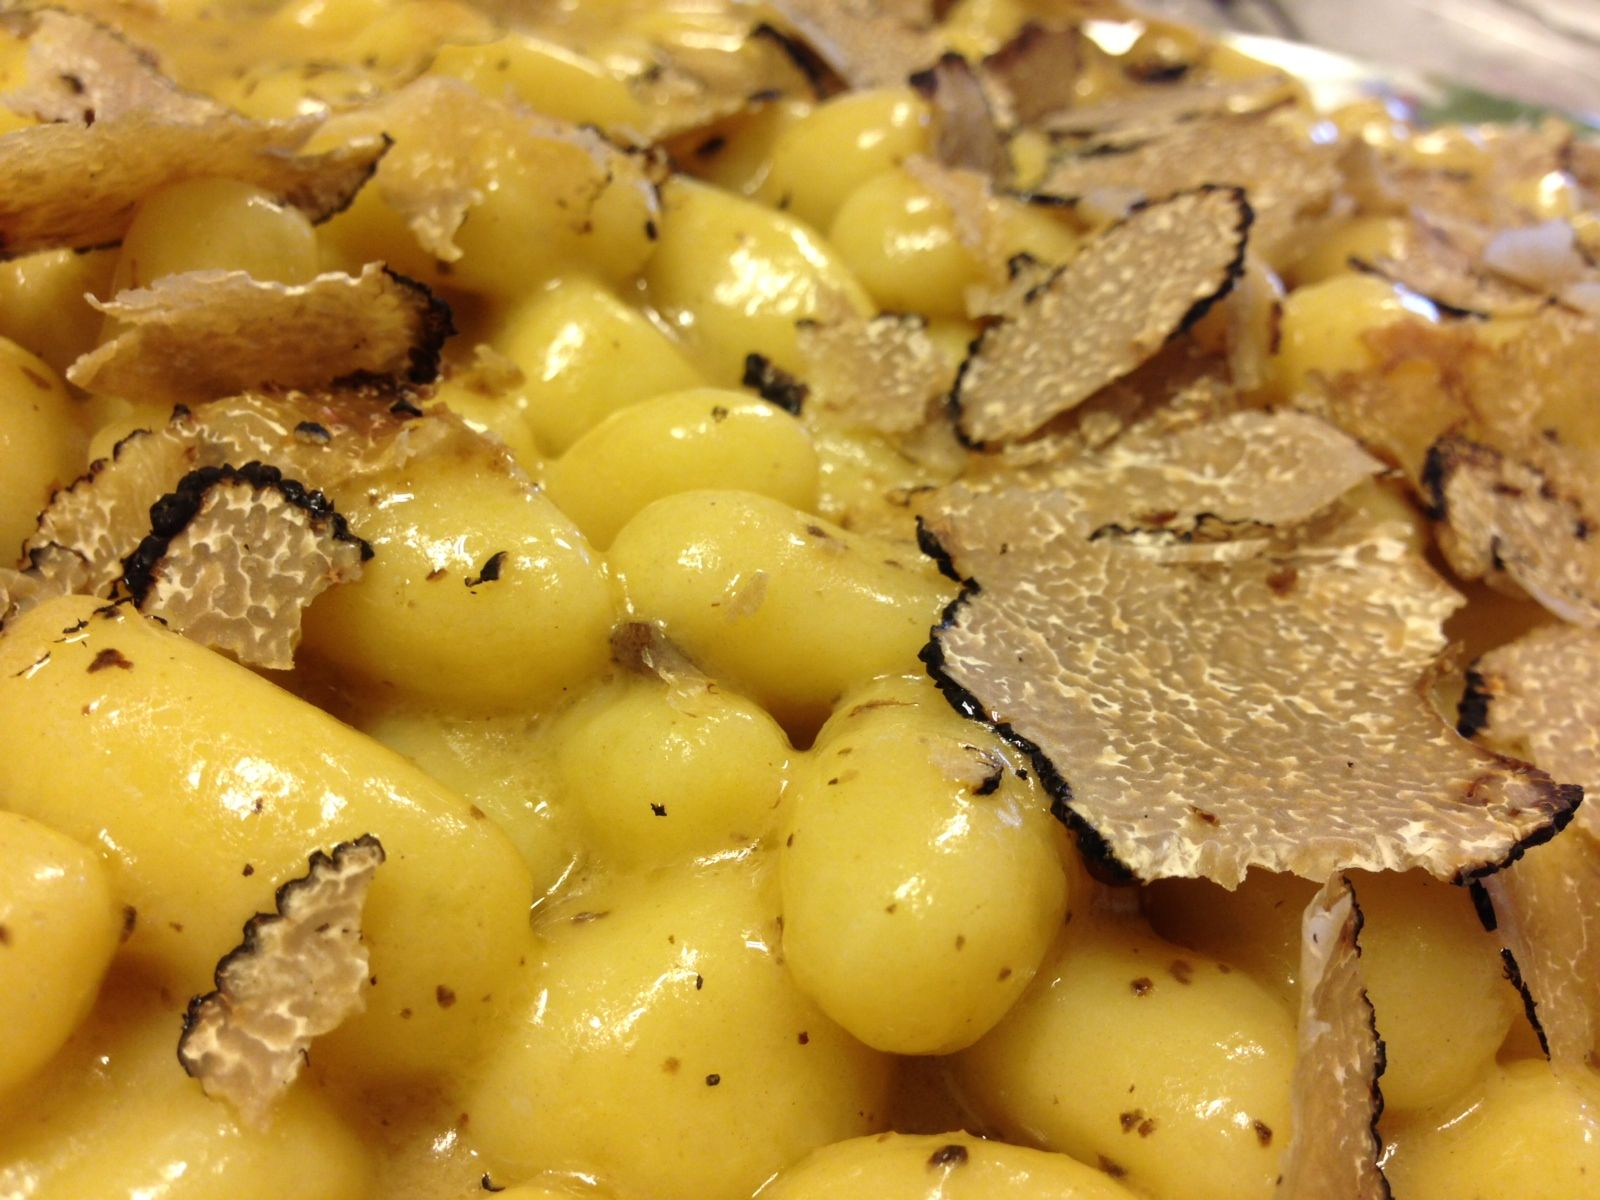 Potatoes gnocchi hand Made with truffle butter and shaved black truffle on top